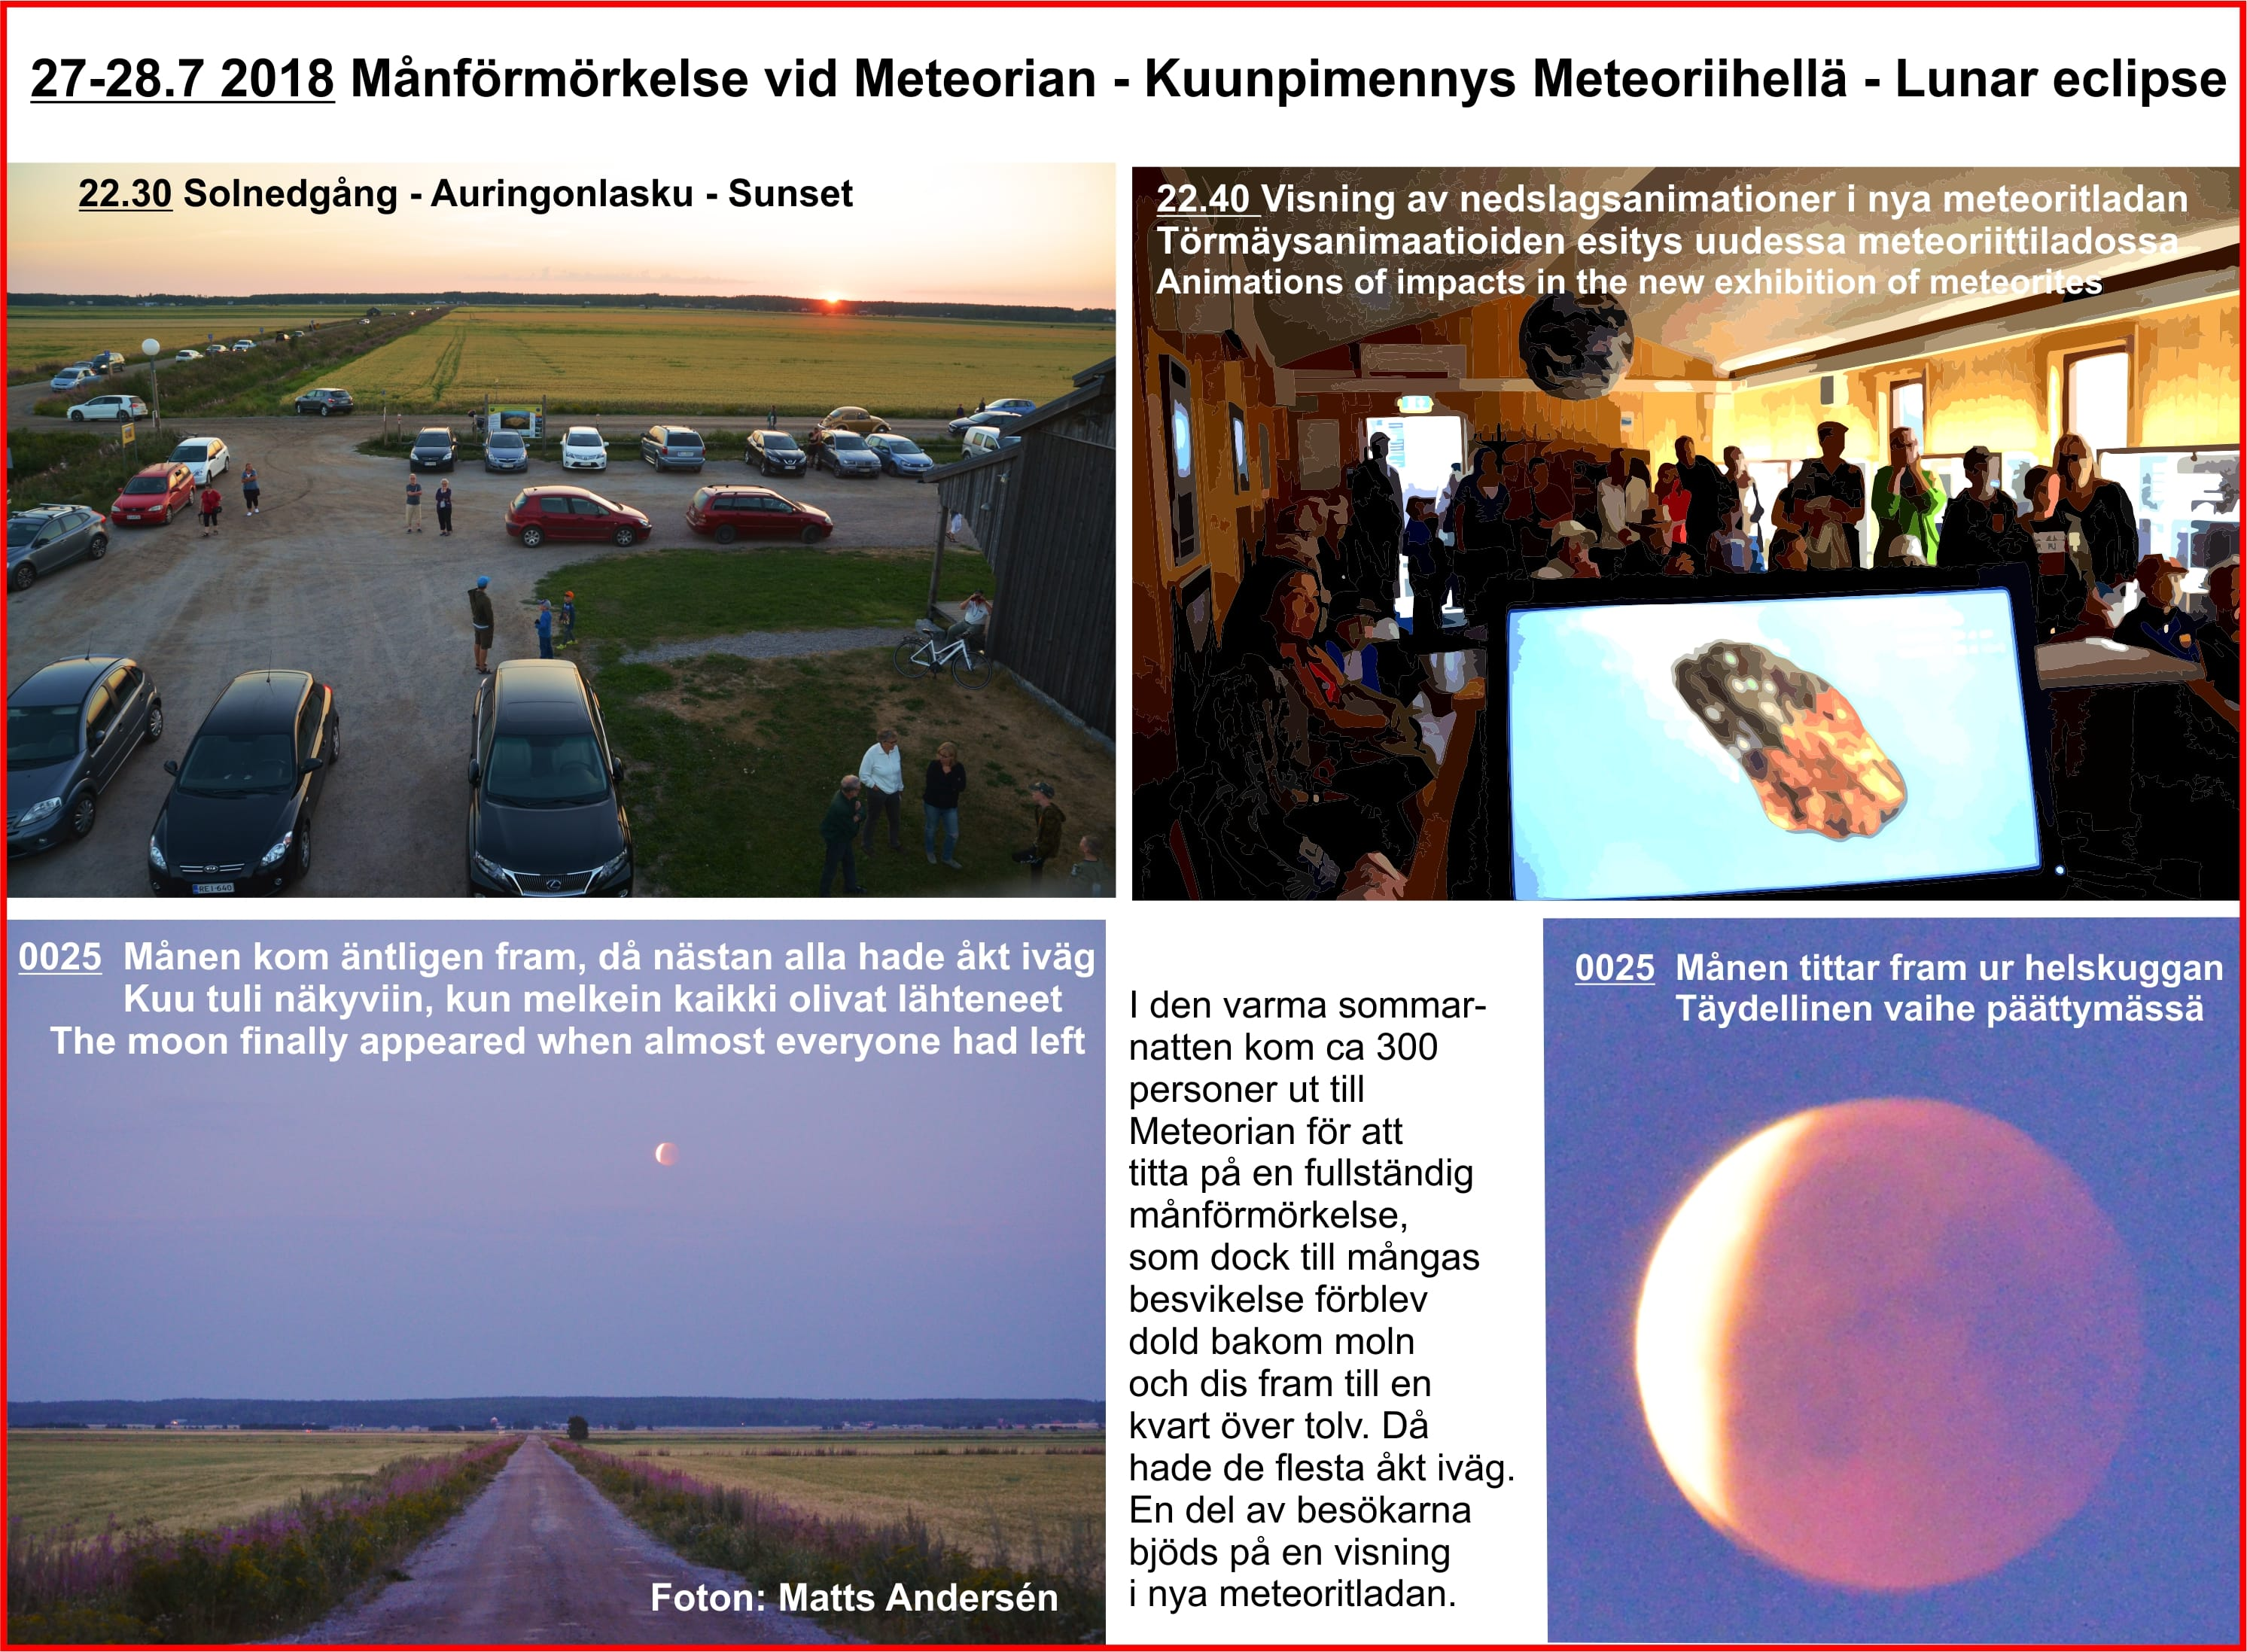 Lunar Eclipse 27-28.7 -18  4 images.jpg